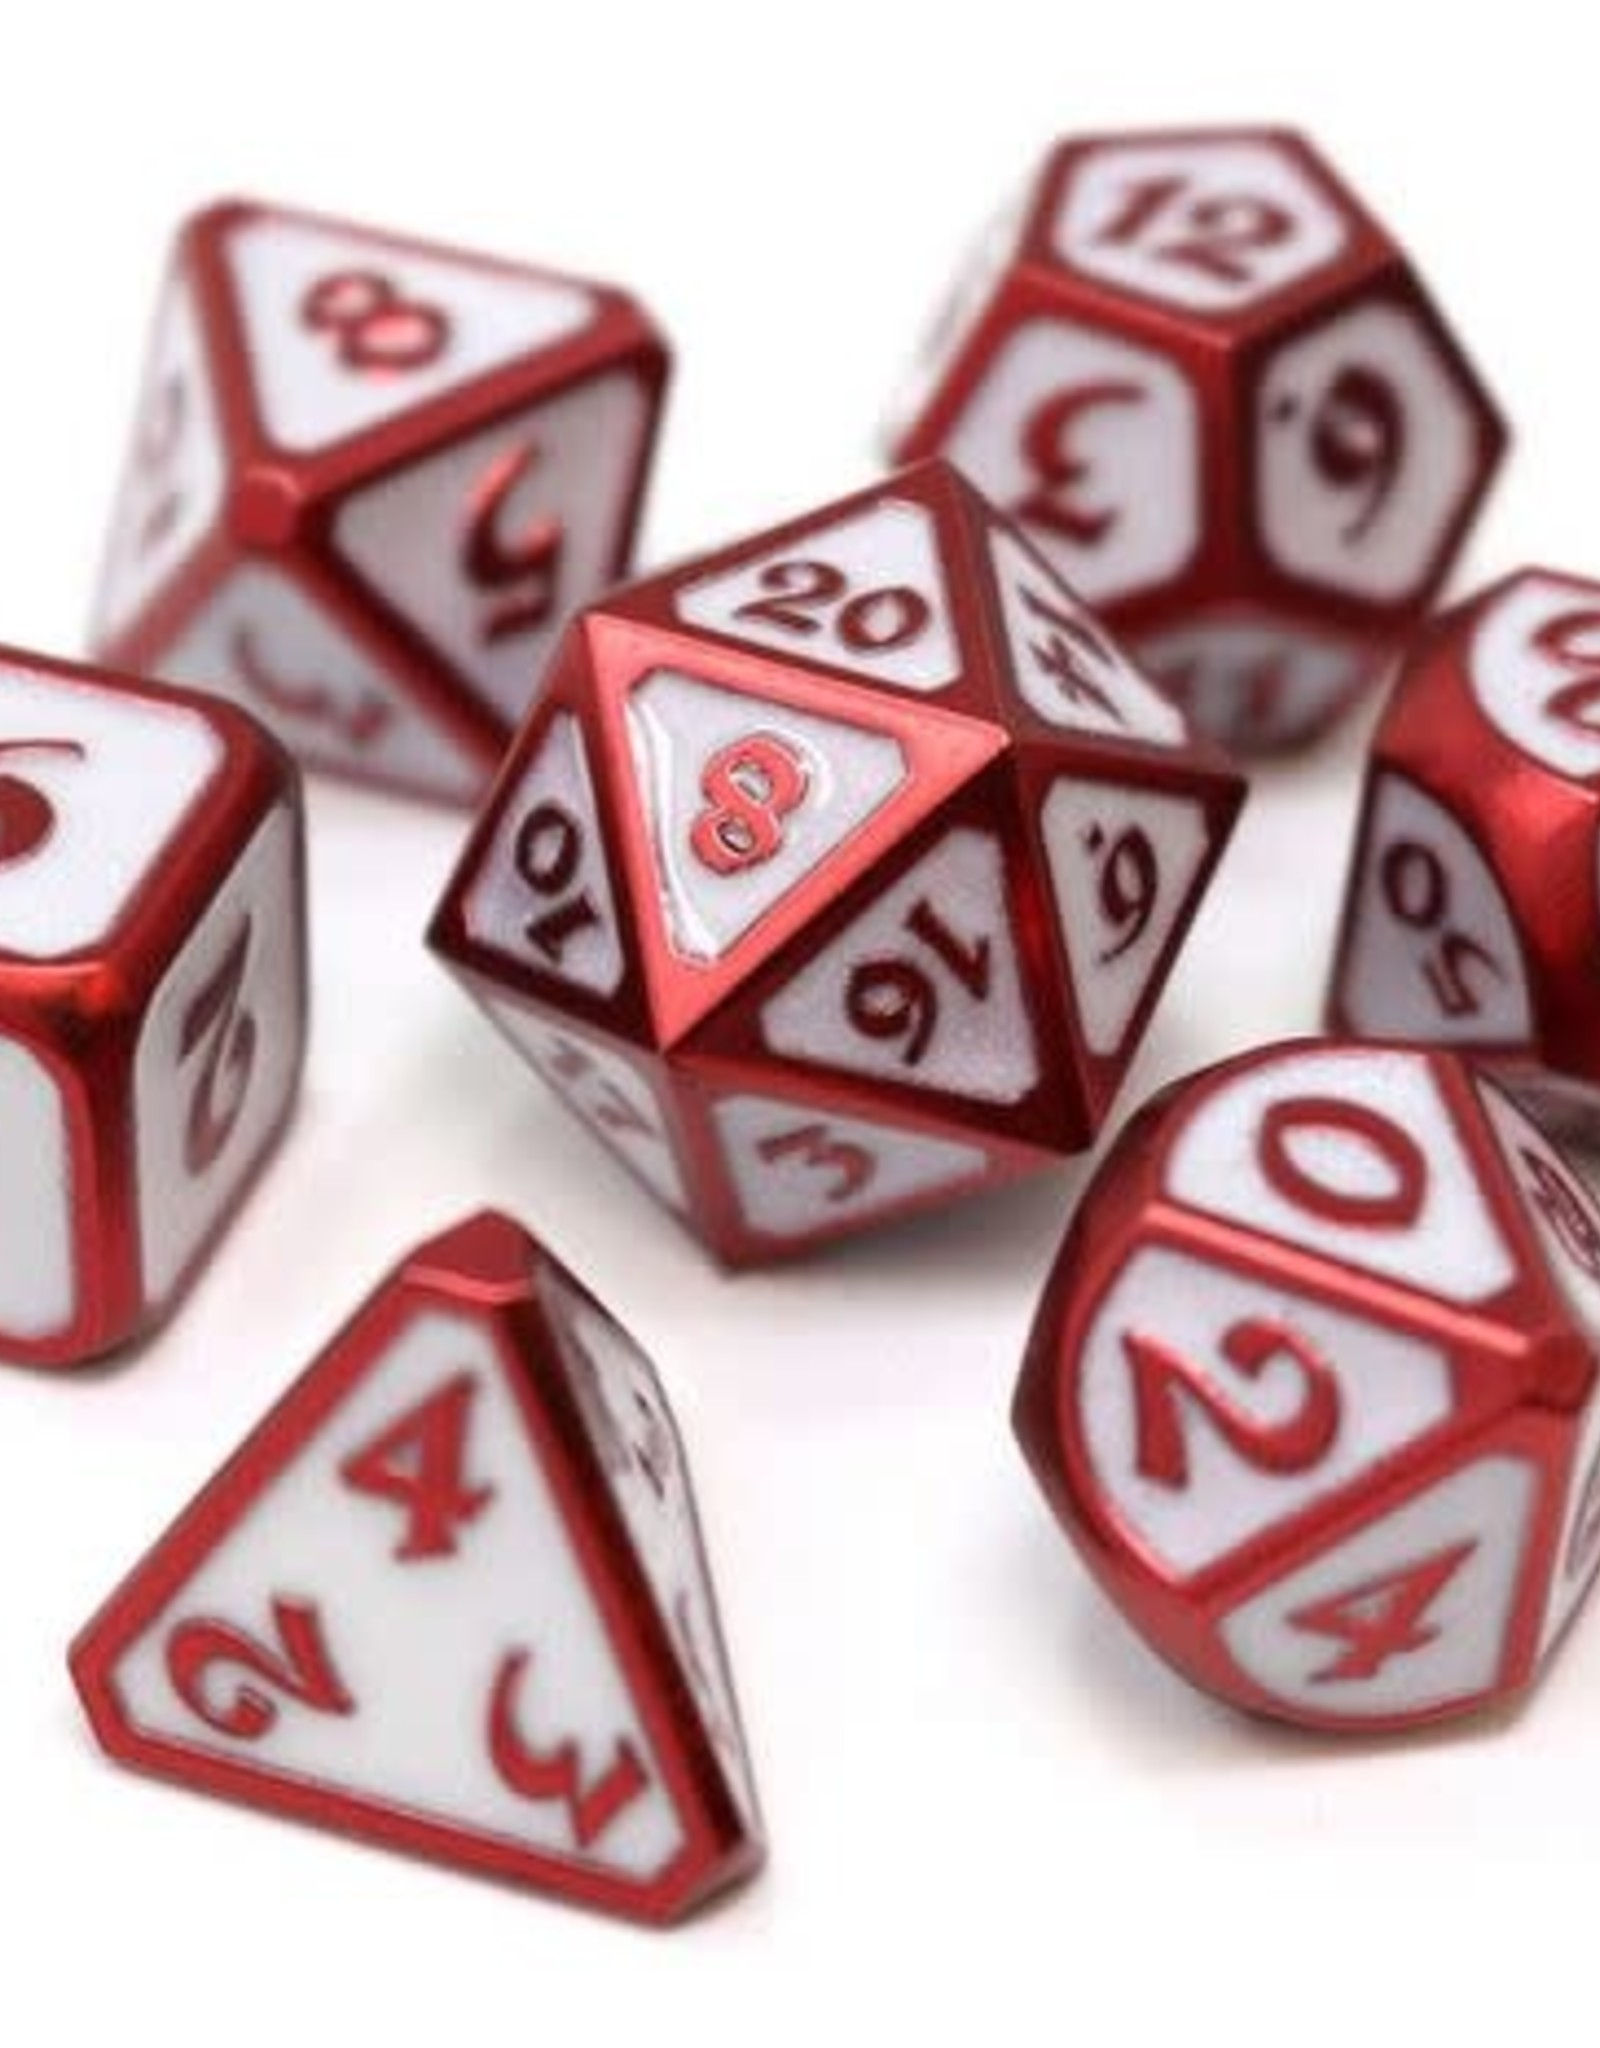 Die Hard Celestial Archon Poly7 Metal Dice Set